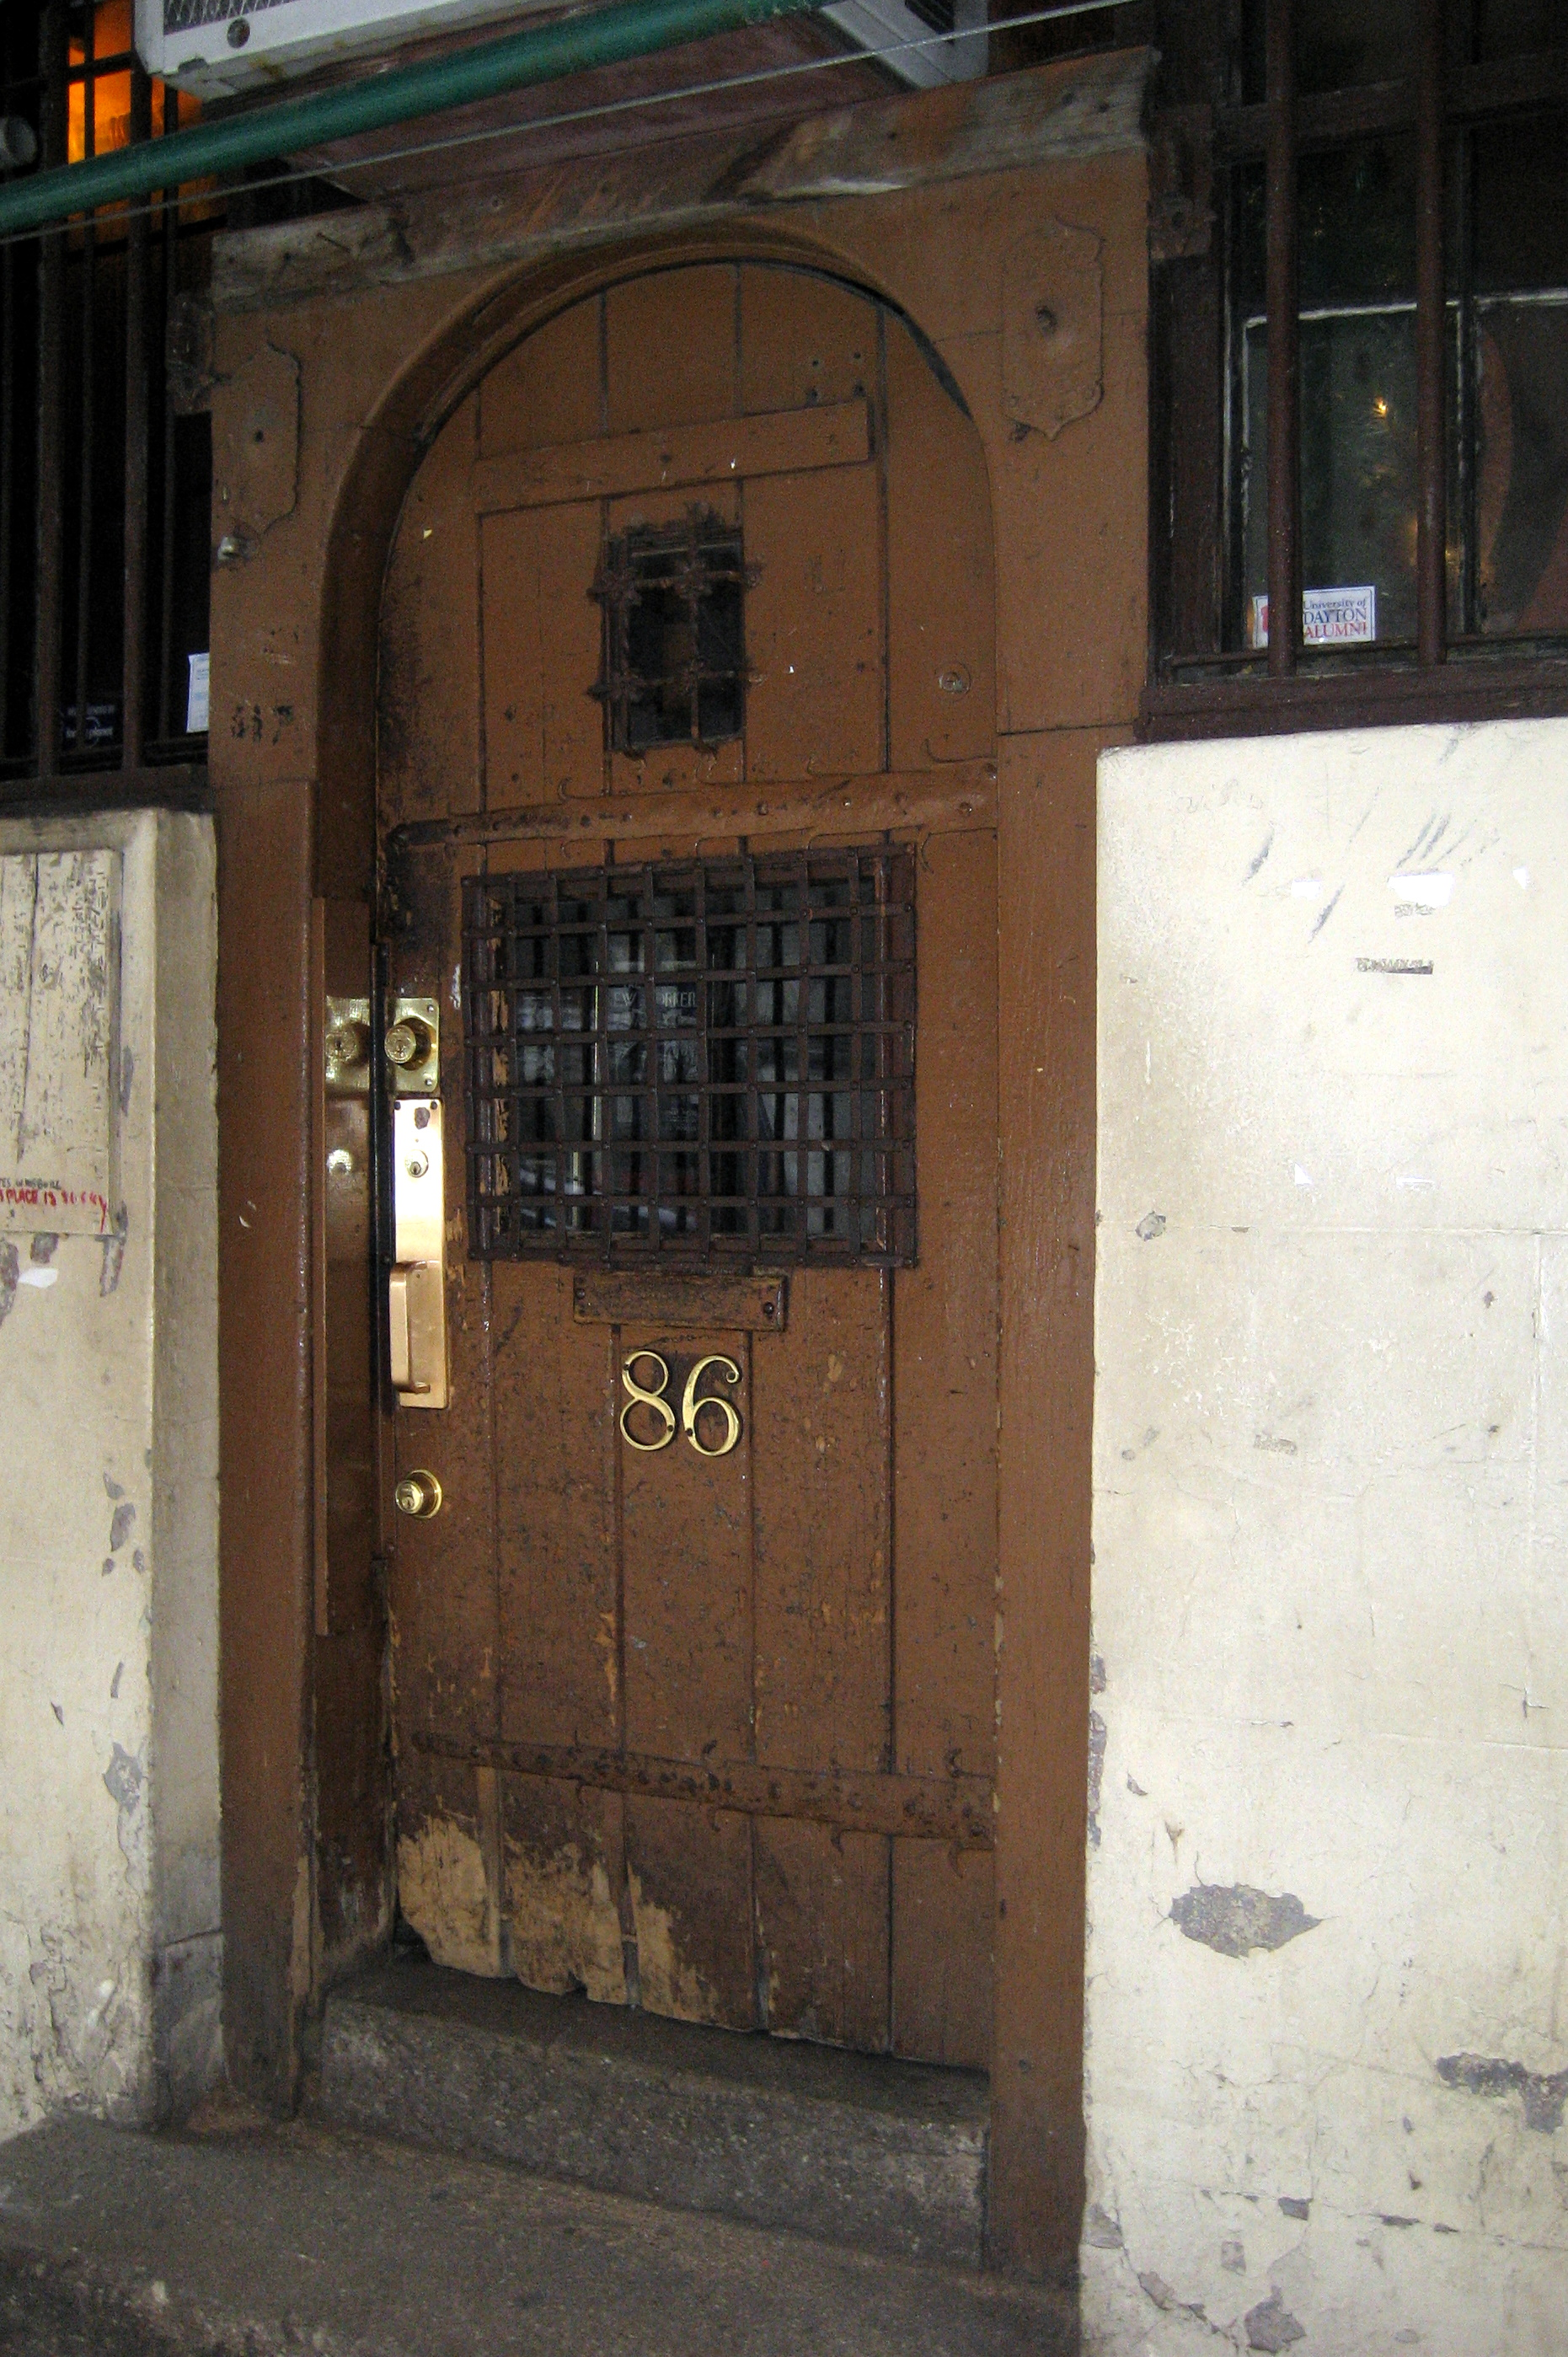 """The door to Chumley's, unmarked besides """"86."""""""